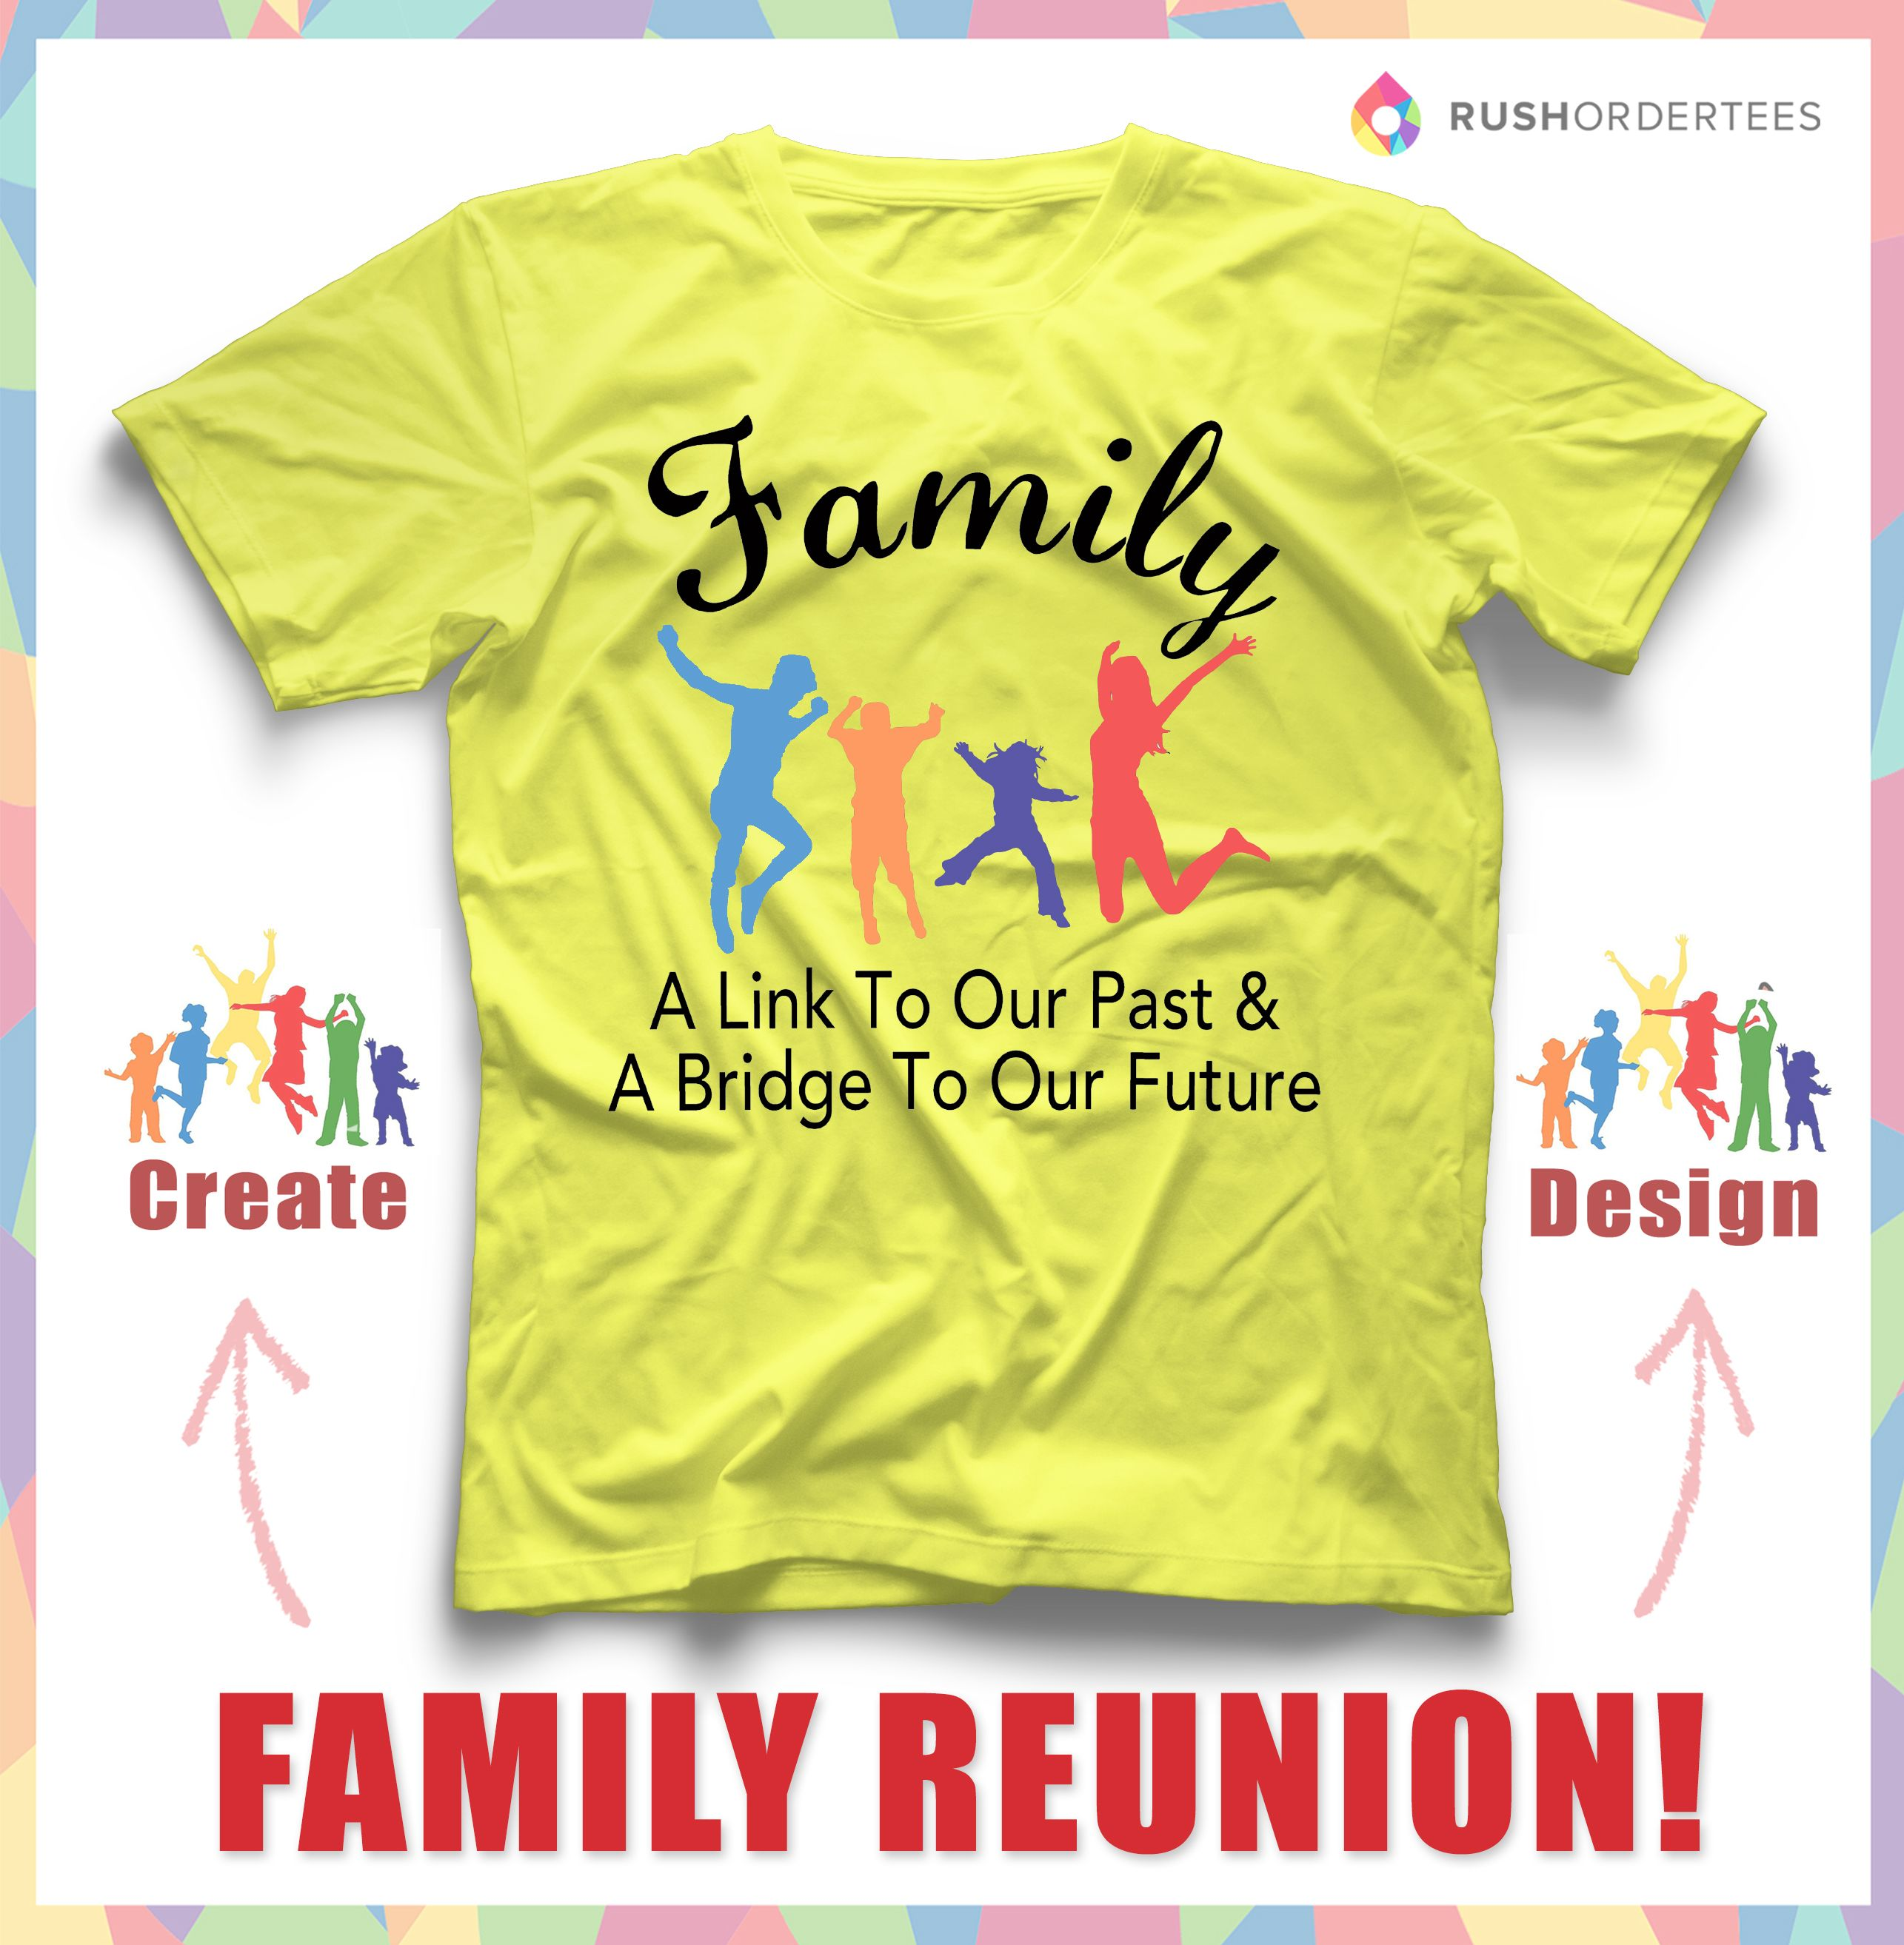 Family Reunion custom t-shirt design idea! Create an awesome custom ...